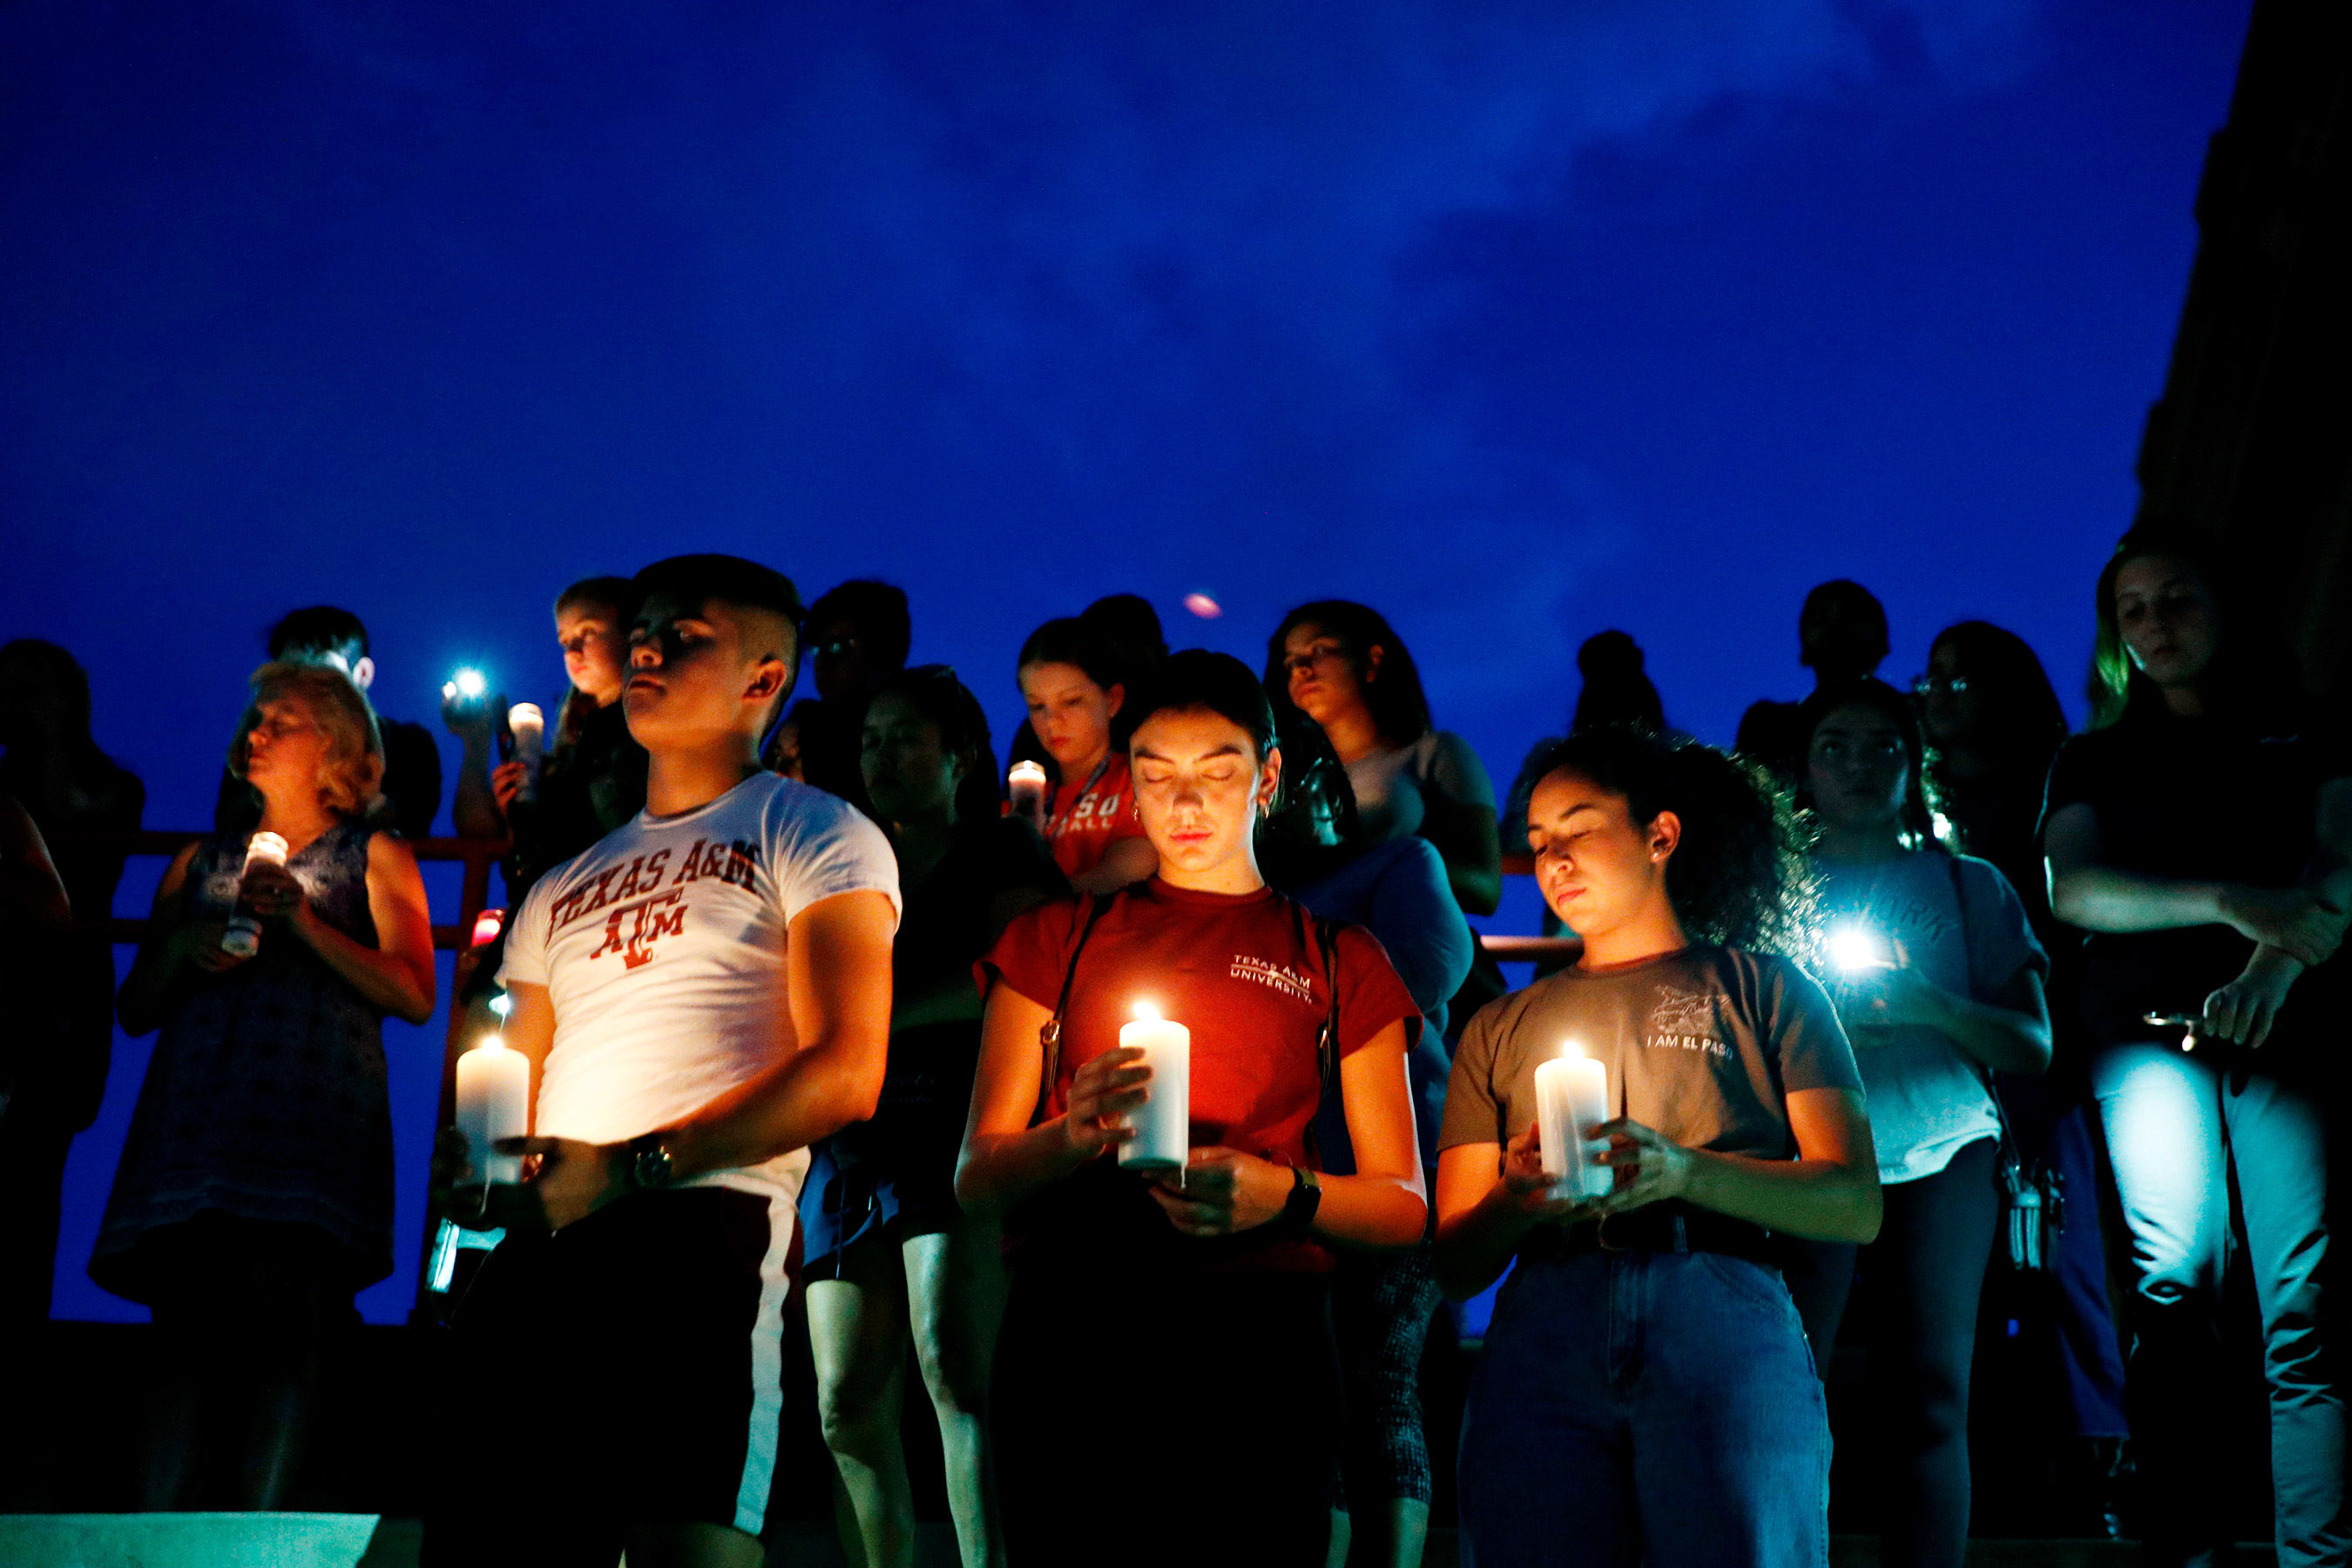 Funerals for Walmart Shooting Victims Will Be Free, Says Non-Profit: 'This Is How El Paso Rolls'